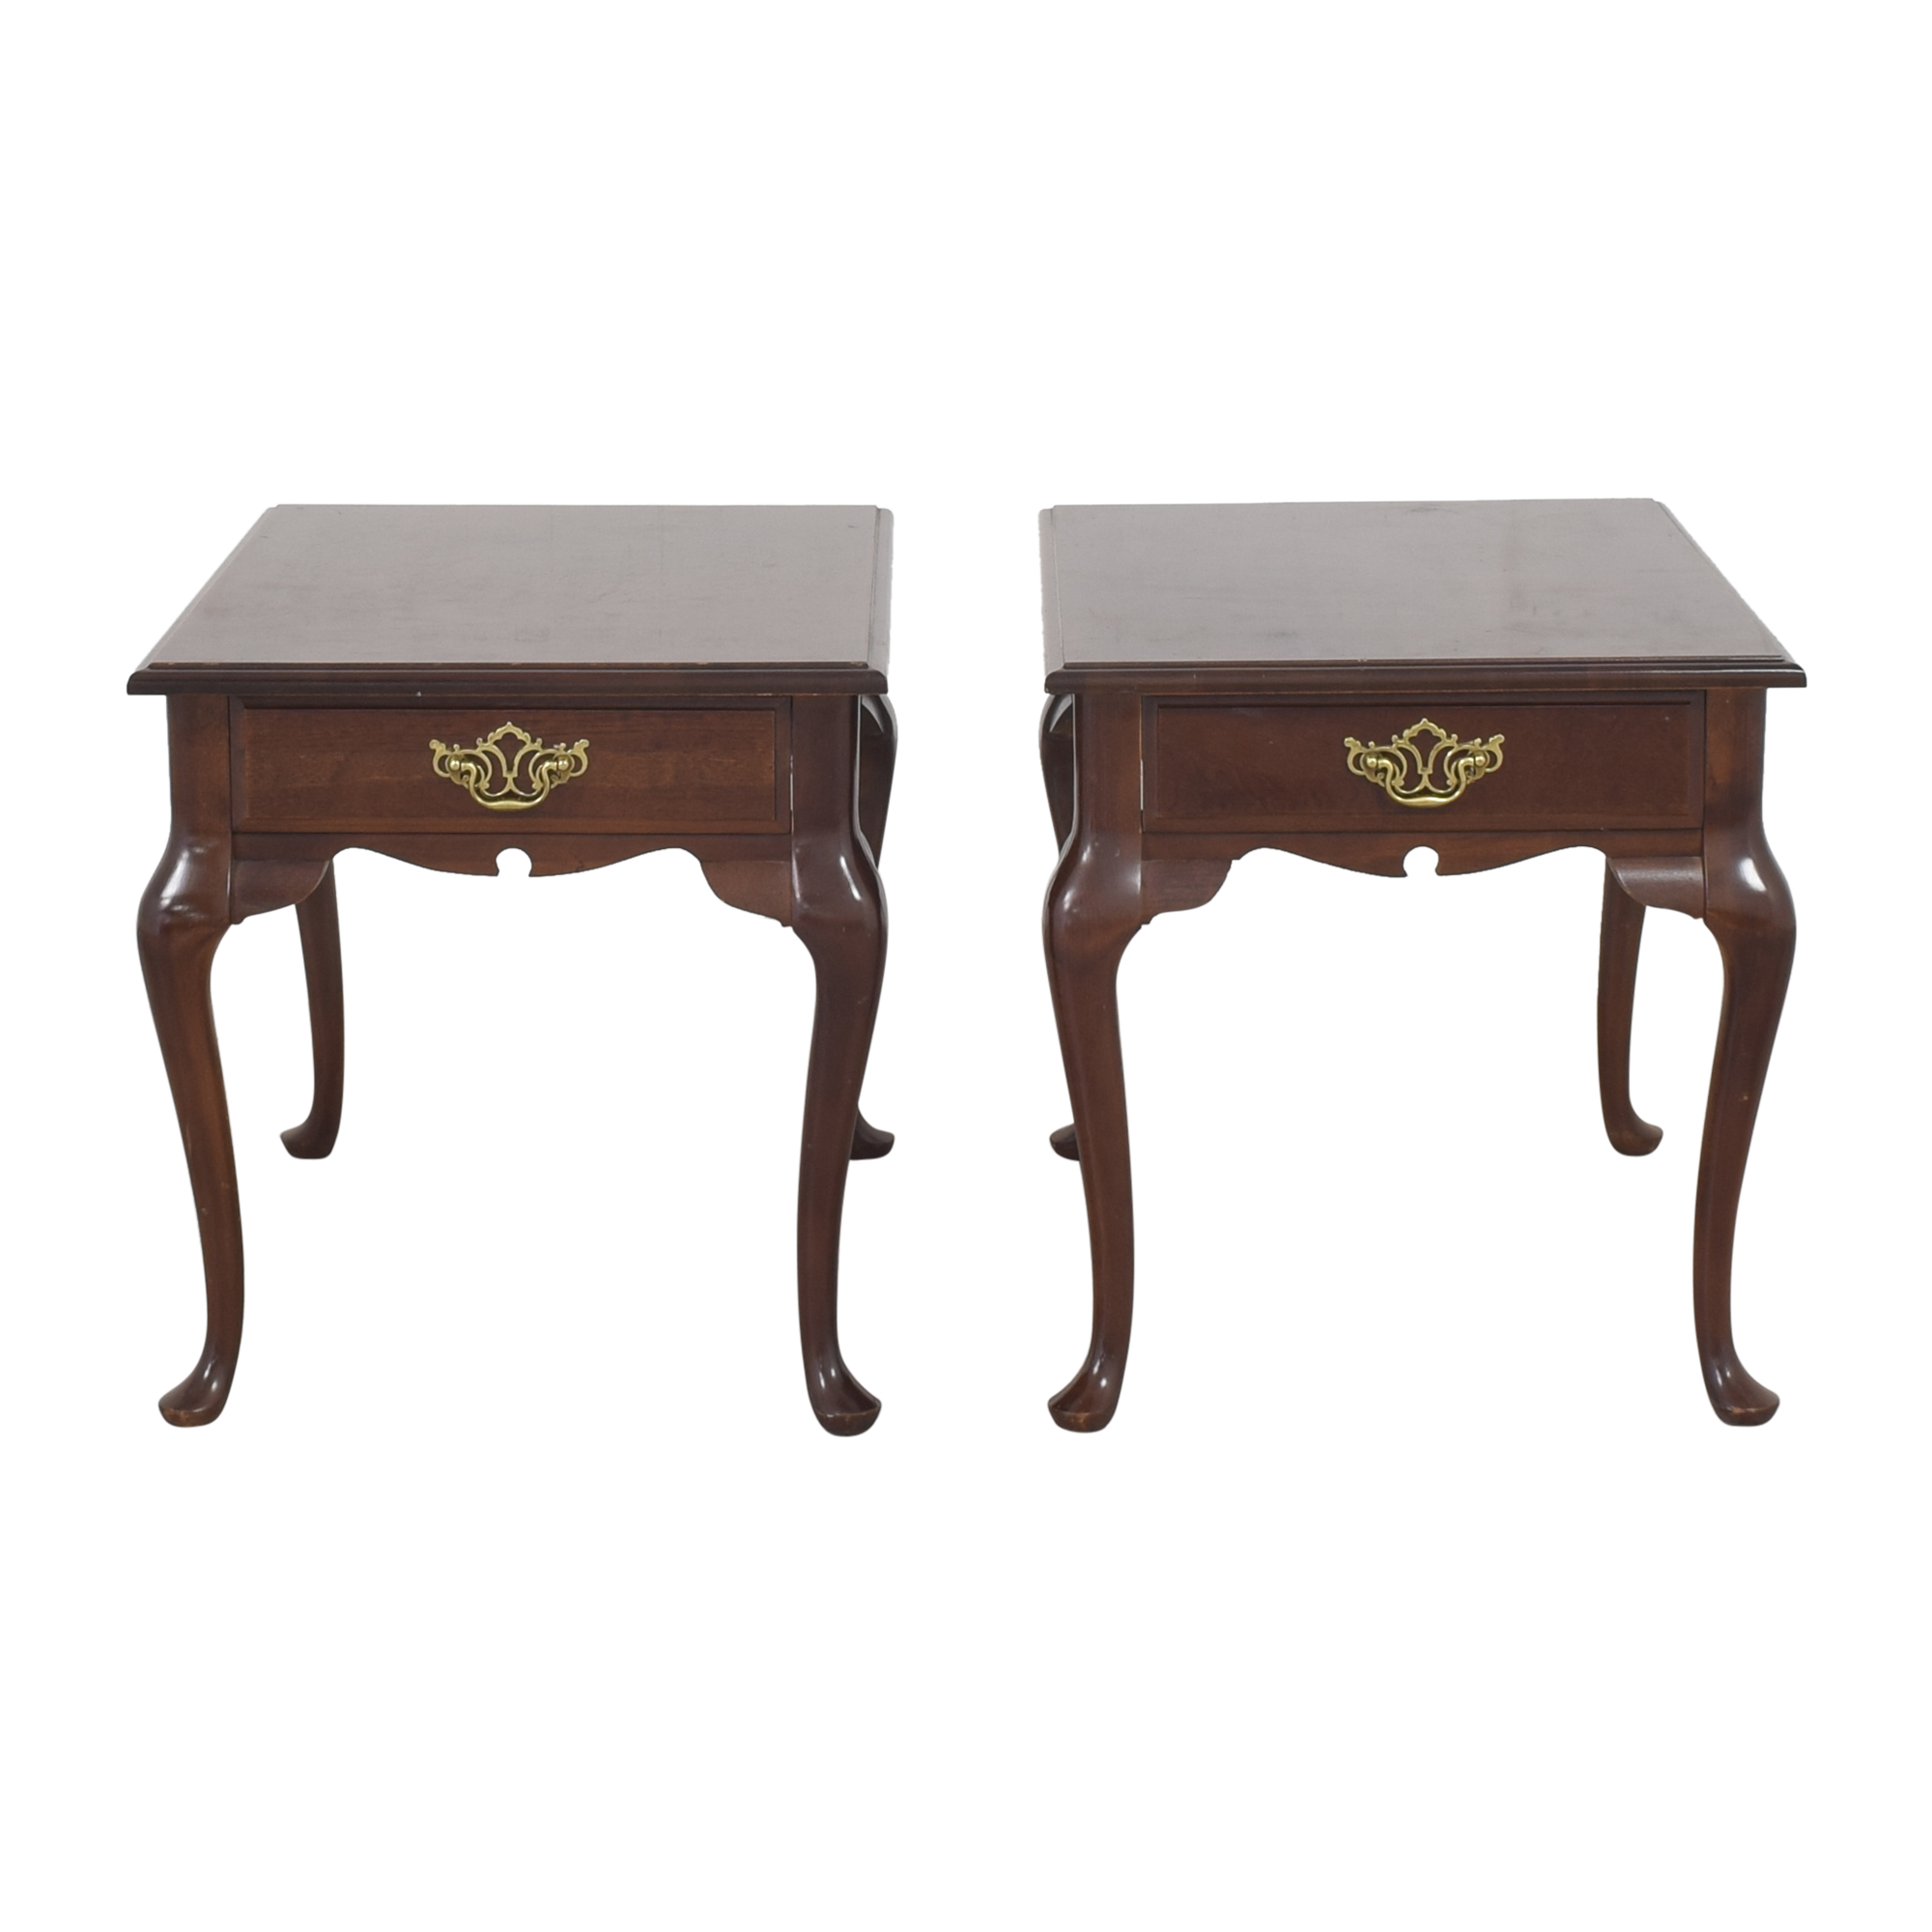 Bassett Furniture Bassett Furniture One Drawer End Tables nyc